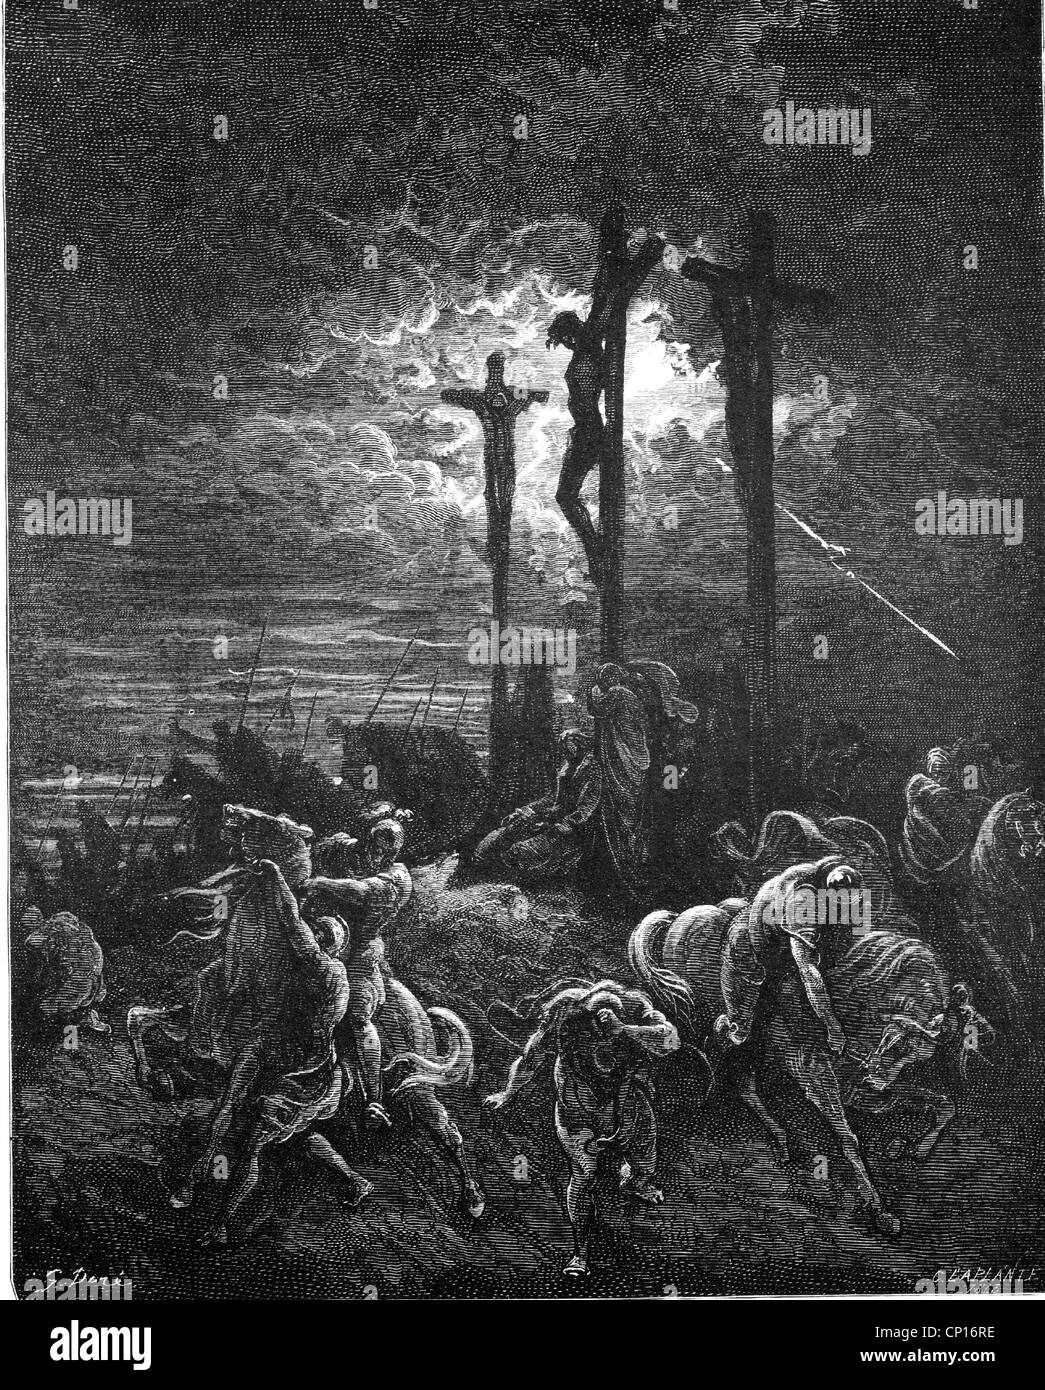 religion, Christianity, Jesus Christus, cross, 'The Darkness', wood engraving by Gustave Dore (1832 - 1883), - Stock Image